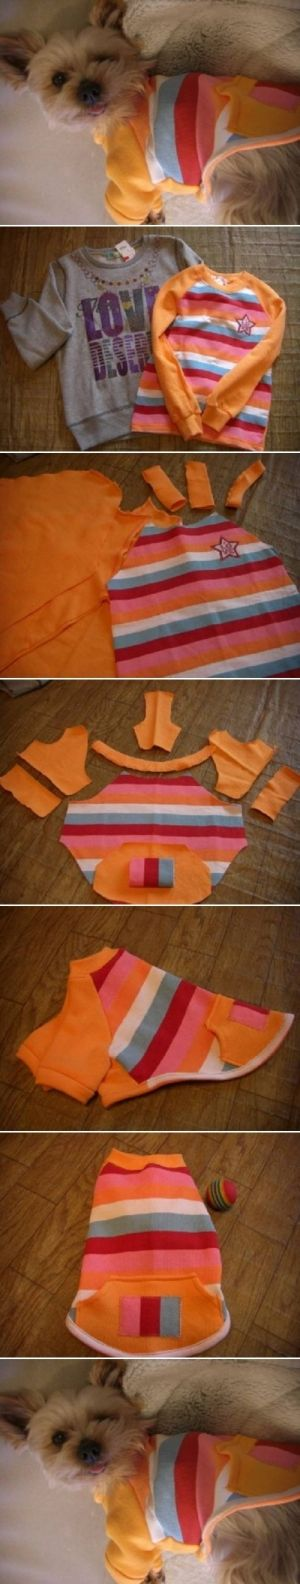 How to make Sweater Dog Clothes step by step DIY tutorial instructions , How to, how to make, step by step, picture tutorials, diy instructi by Mary Smith fSesz